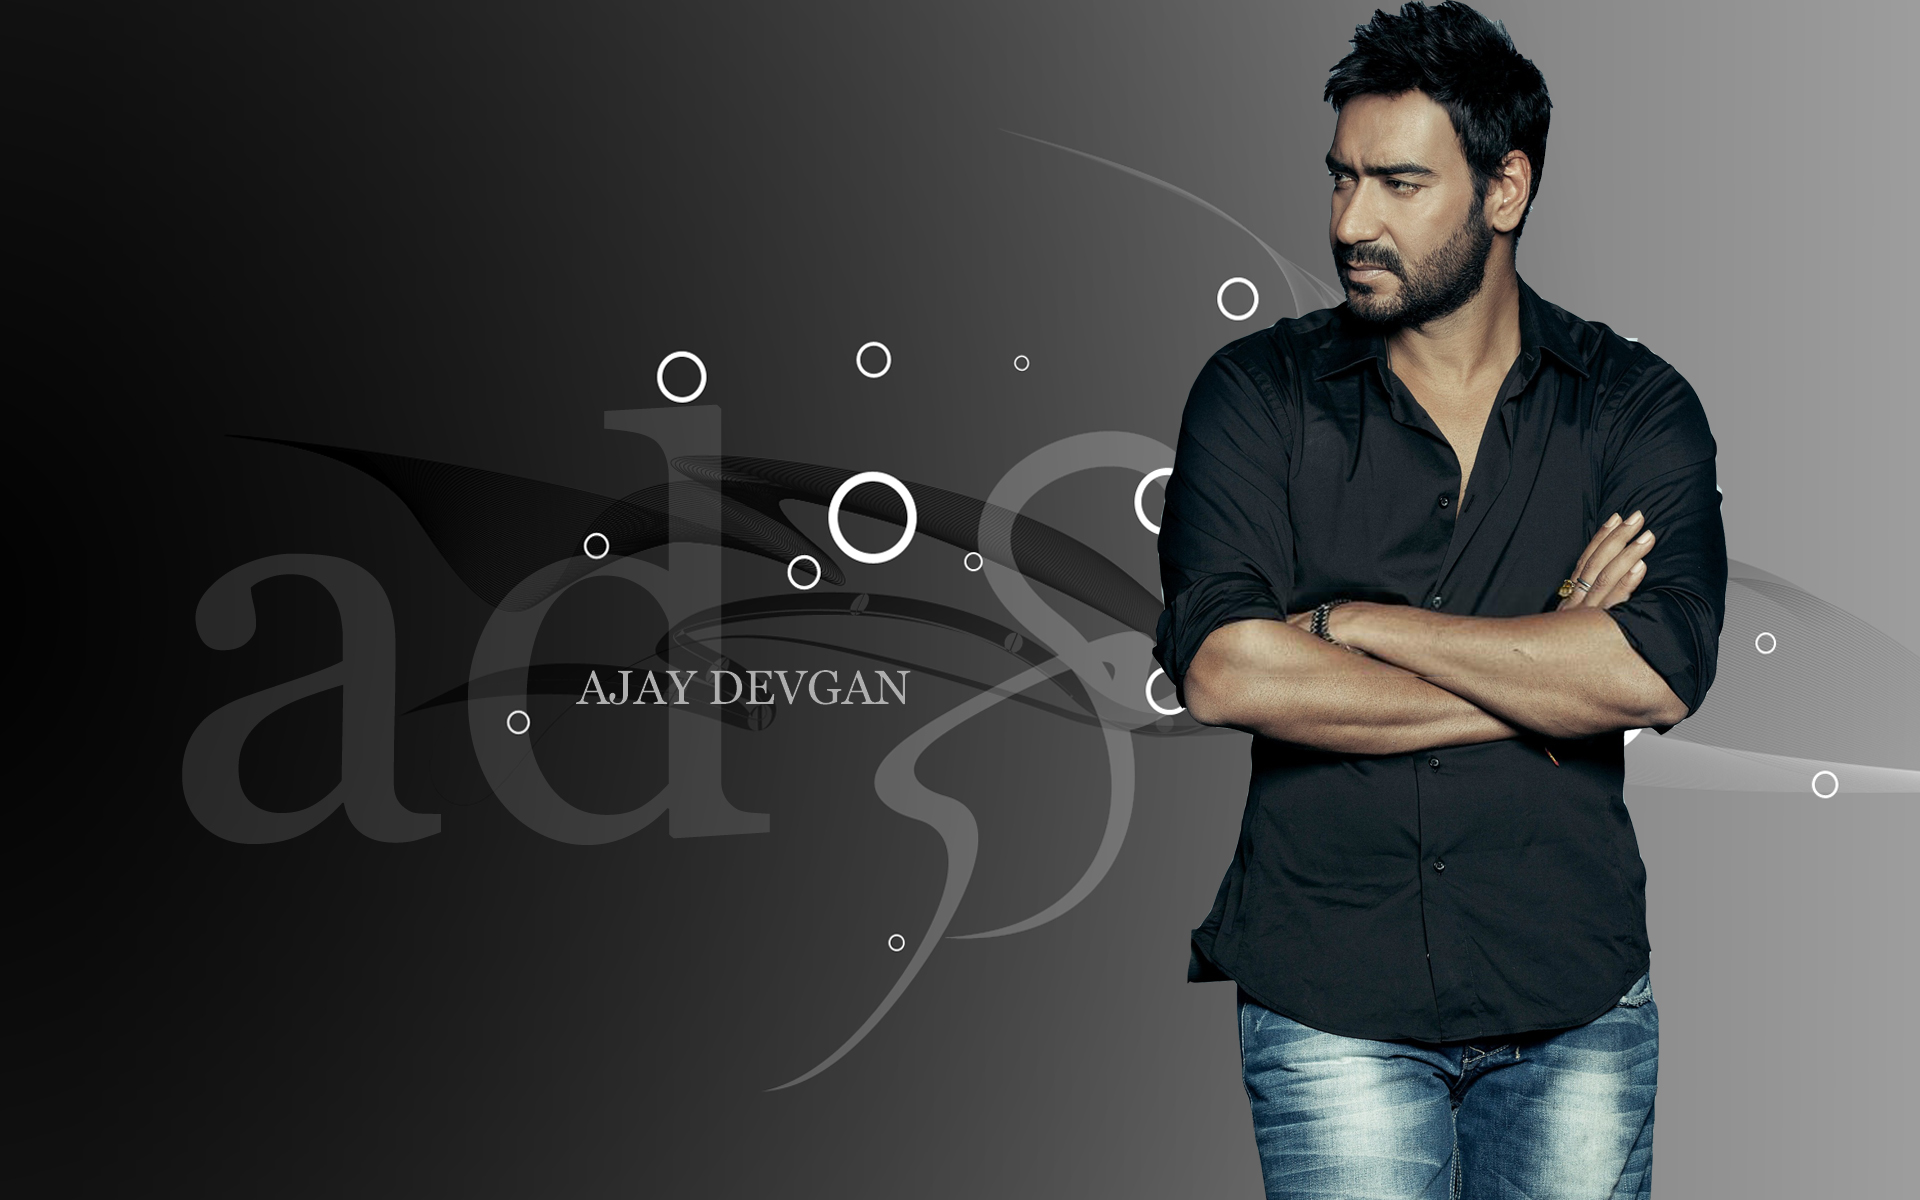 Ajay-Devgan-HD-Ajay-Devgan-HD-ajay-devgan-latest-hd-and-new-photos-wallpaper-wp3402237